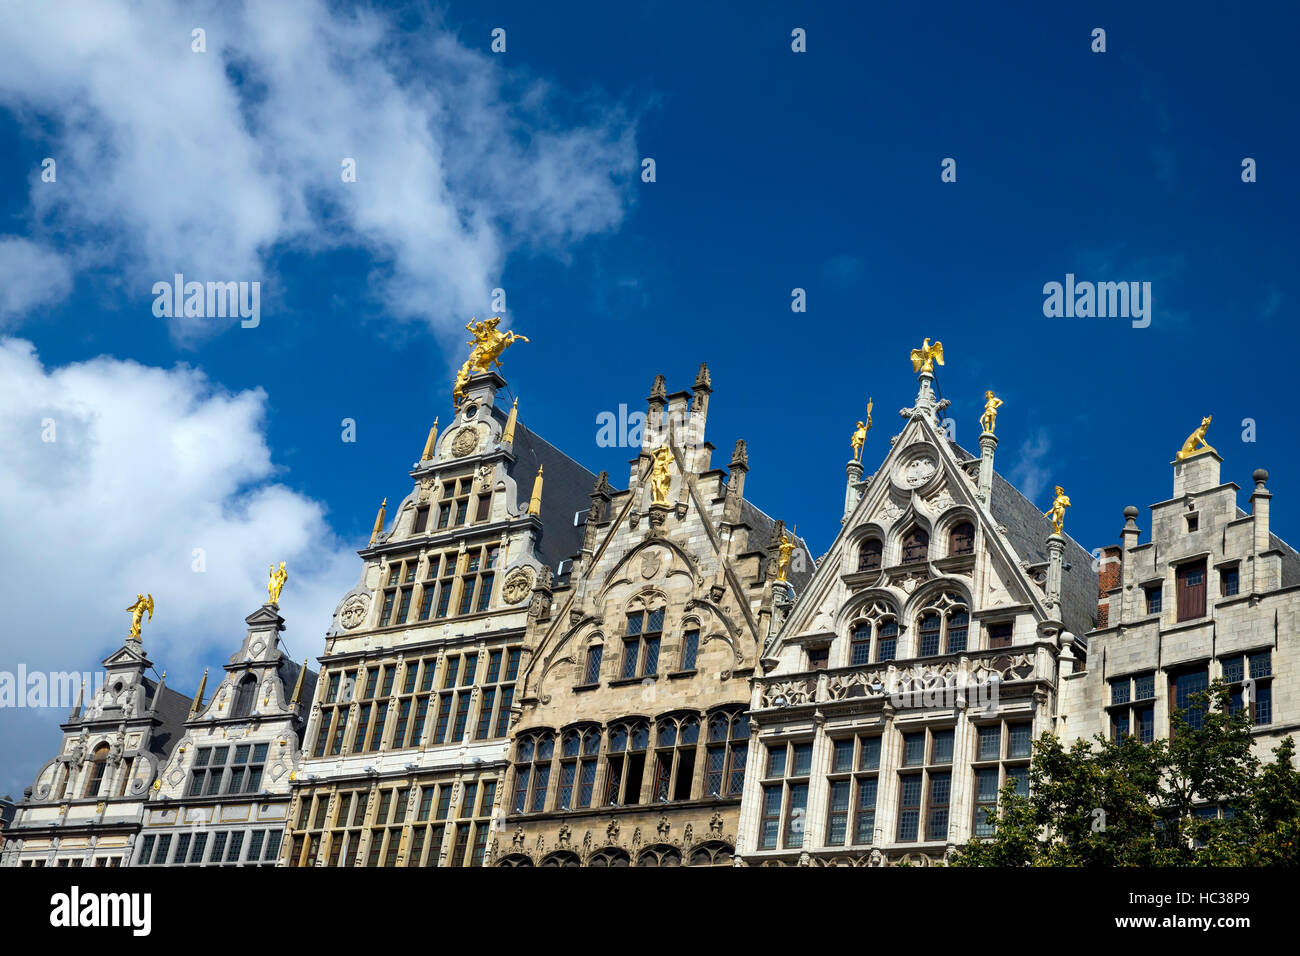 Old Guild Houses on the Grote Markt, city centre, Antwerp, Belgium, Europe Stock Photo